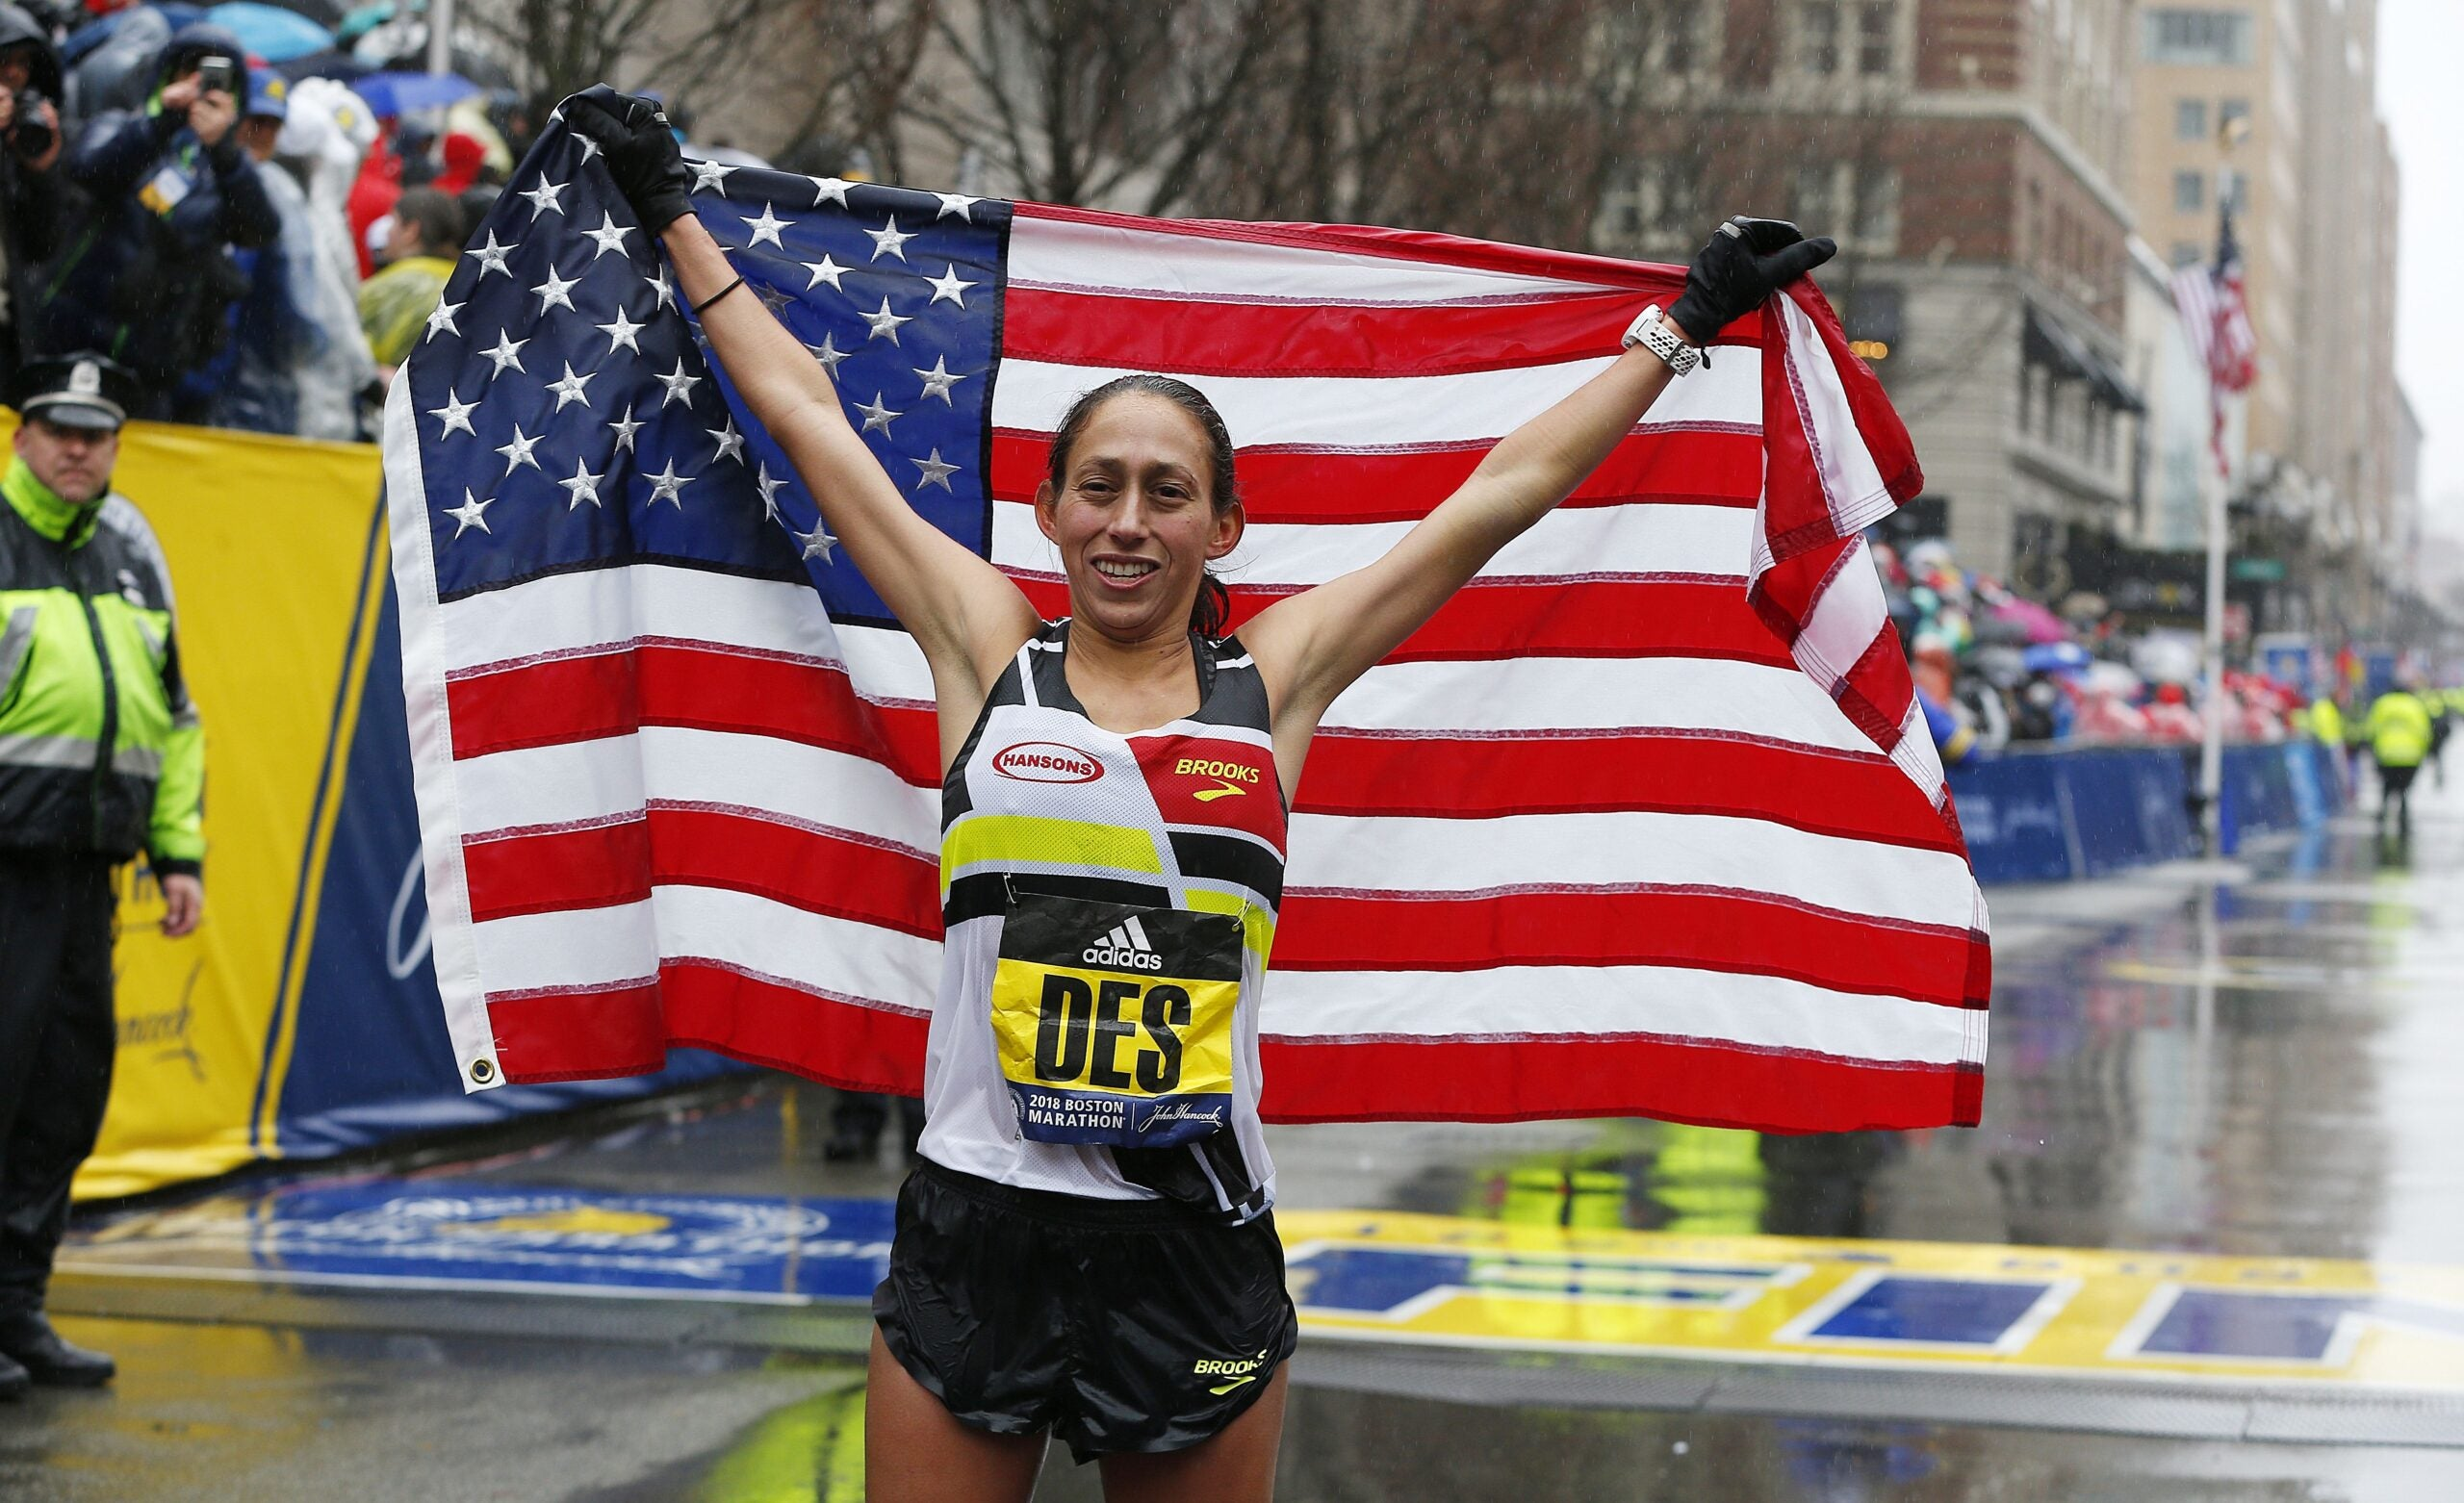 Desiree Linden of the US after crossing the finish line to win the women's division of the 122nd Boston Marathon.